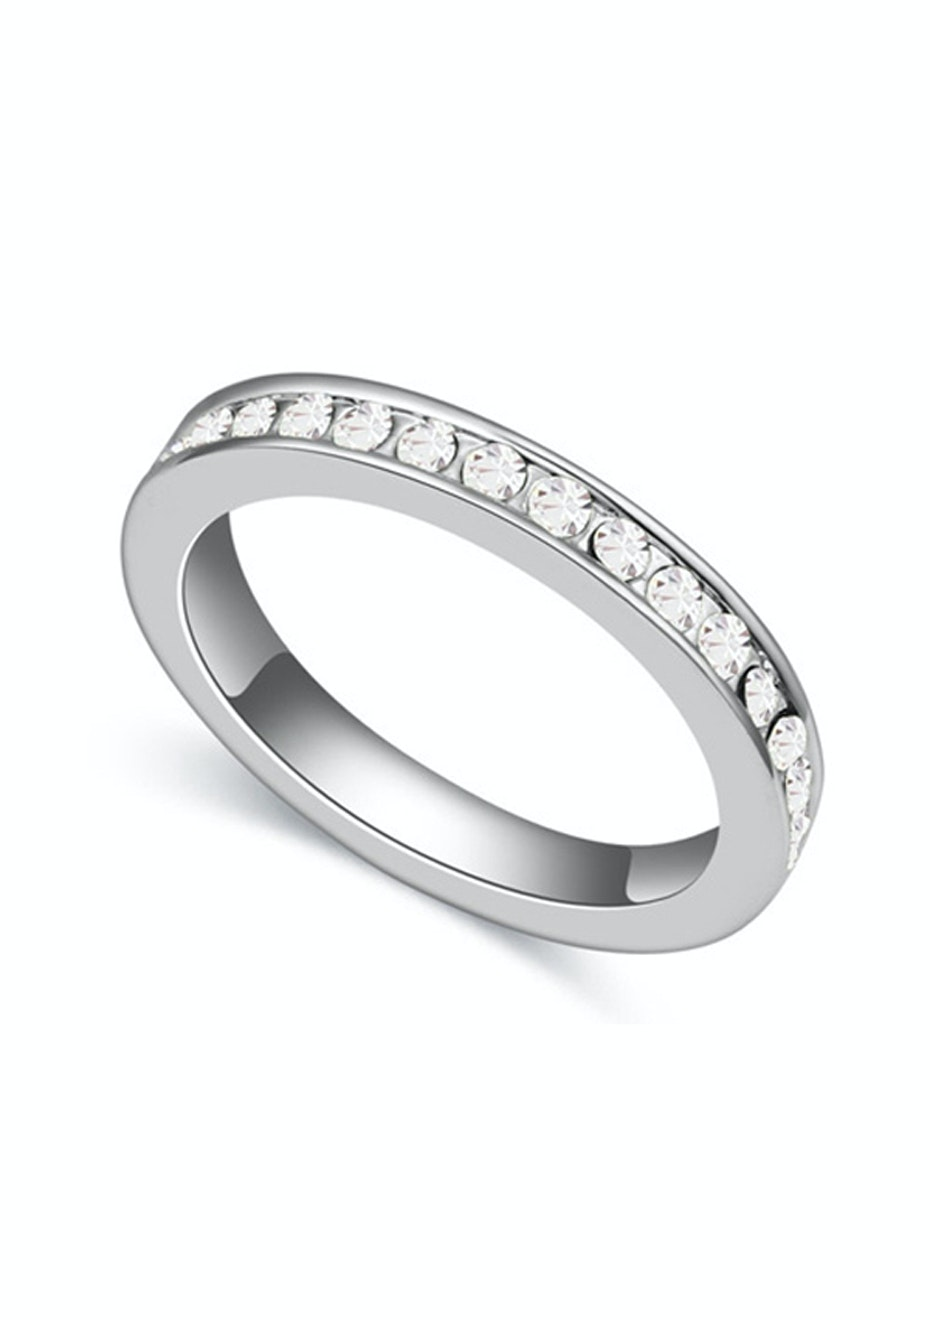 Stackable Pave Ring Embellished with Crystals from Swarovski -CLR